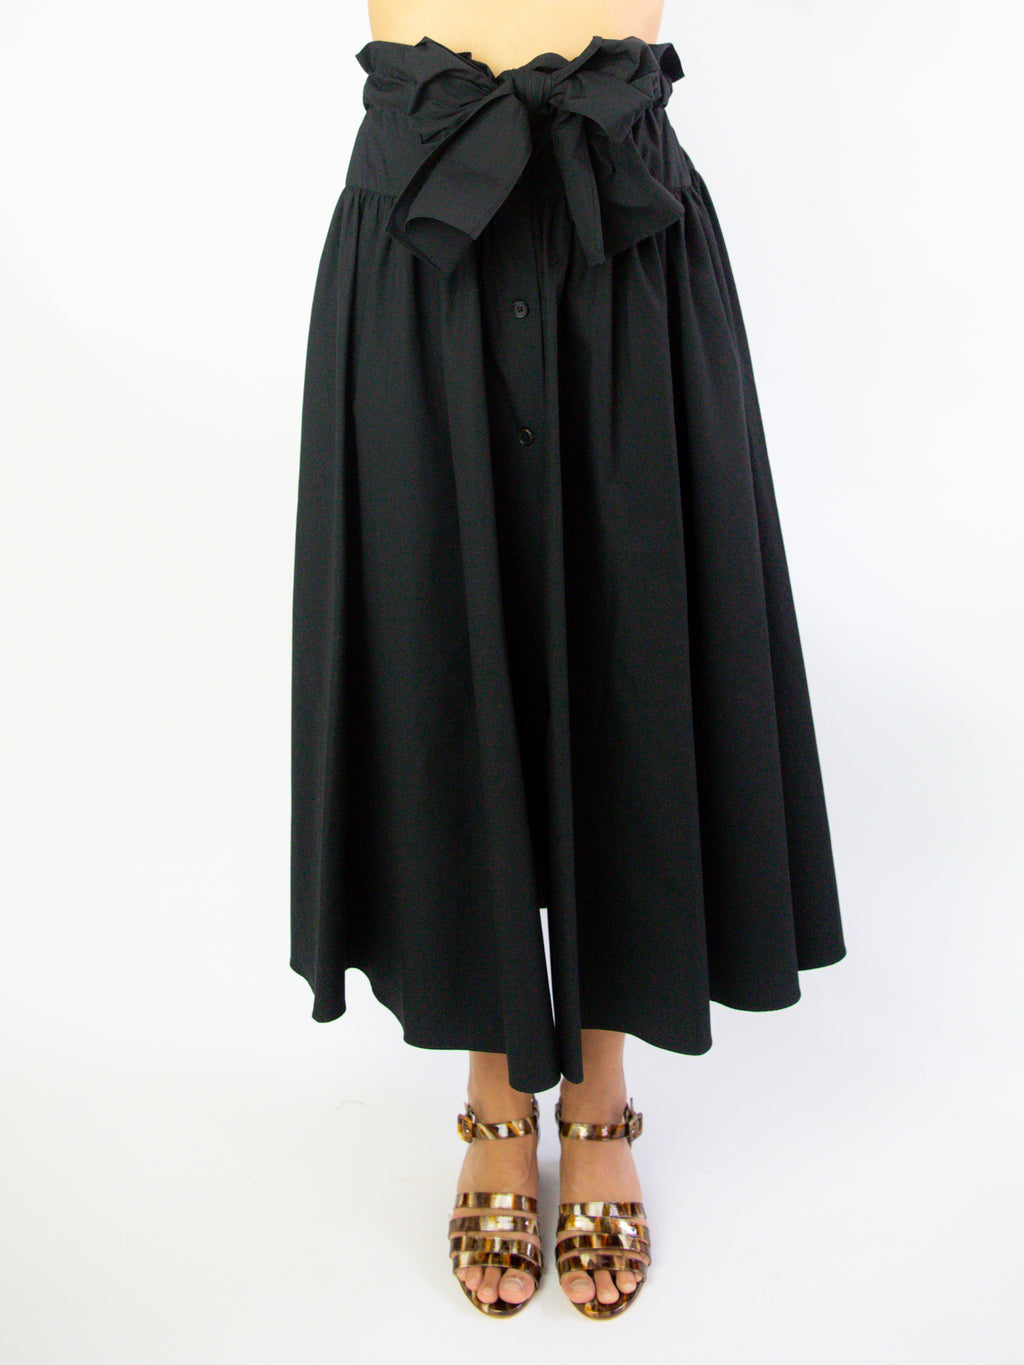 Carlita Skirt - Black